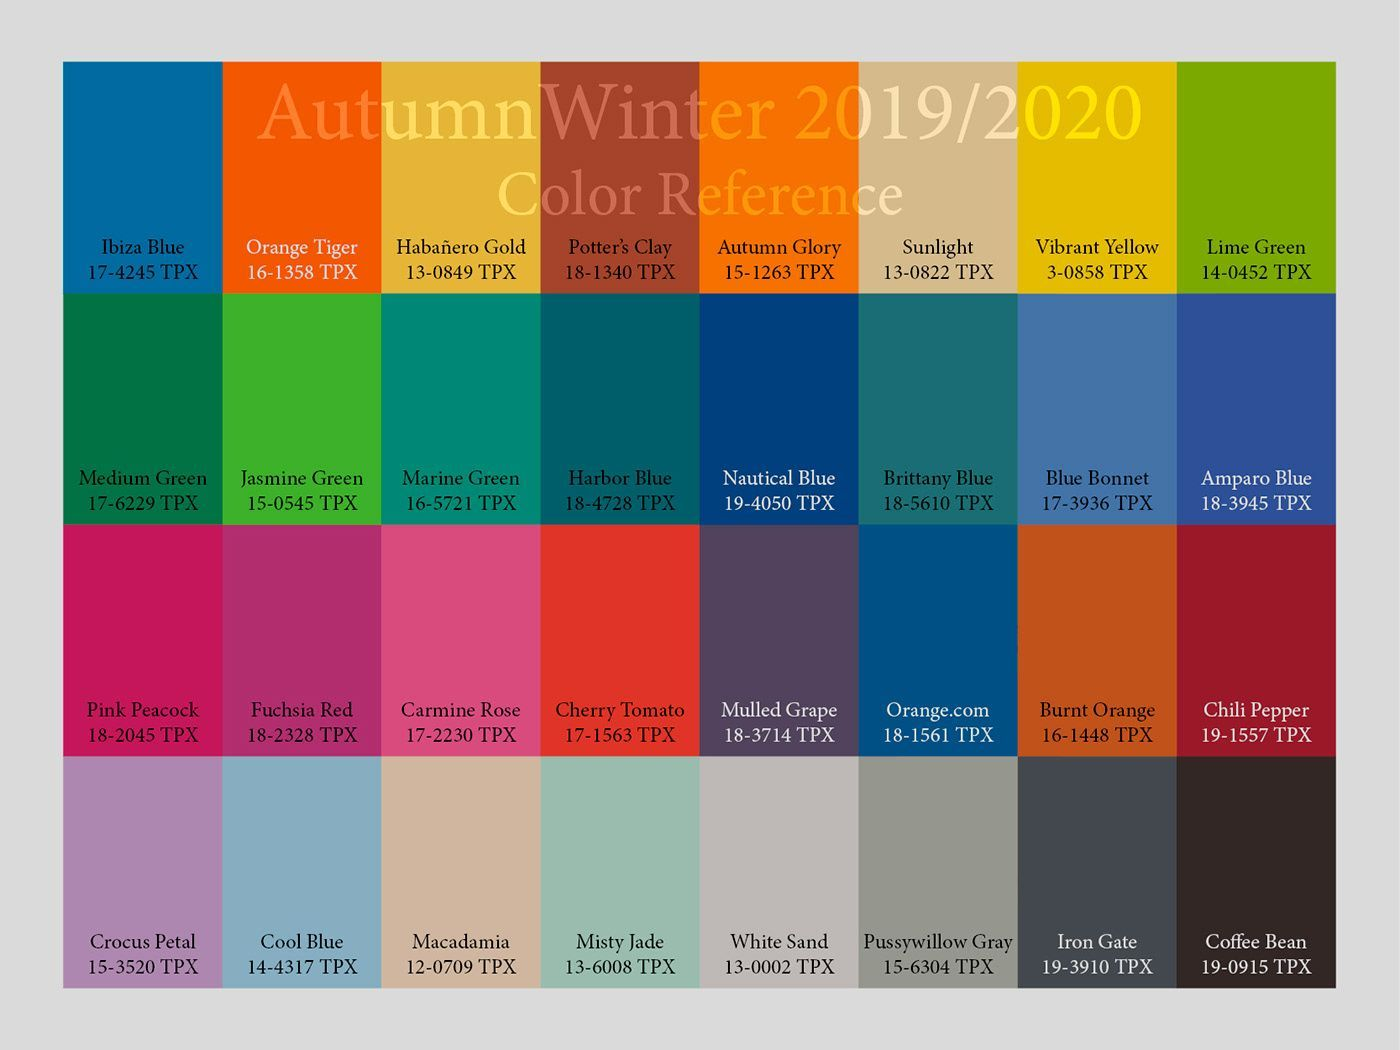 36 Colour Trends For Winter This Year Fashion Colour Trends For Winter With The Timeless Type Of Old Women S Coats You Don T Need To Get In 2020 Color Trends Latest Winter